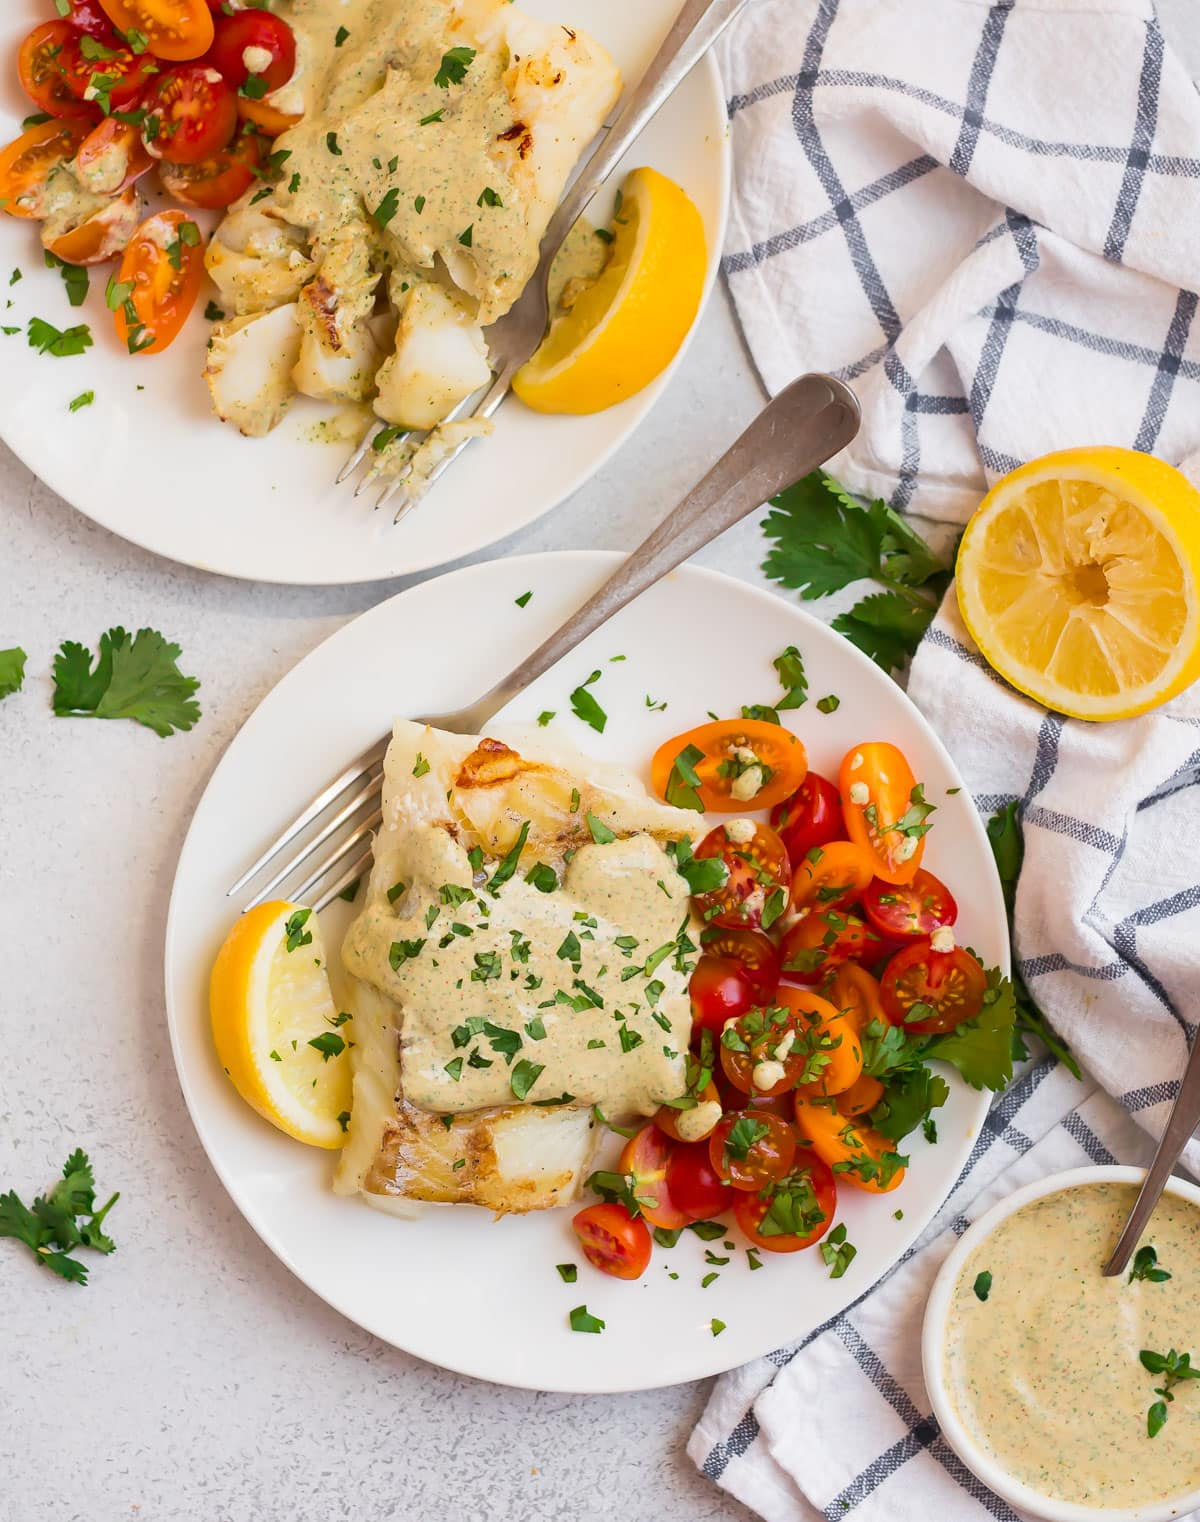 Two plates of grilled cod with lemon and tomatoes